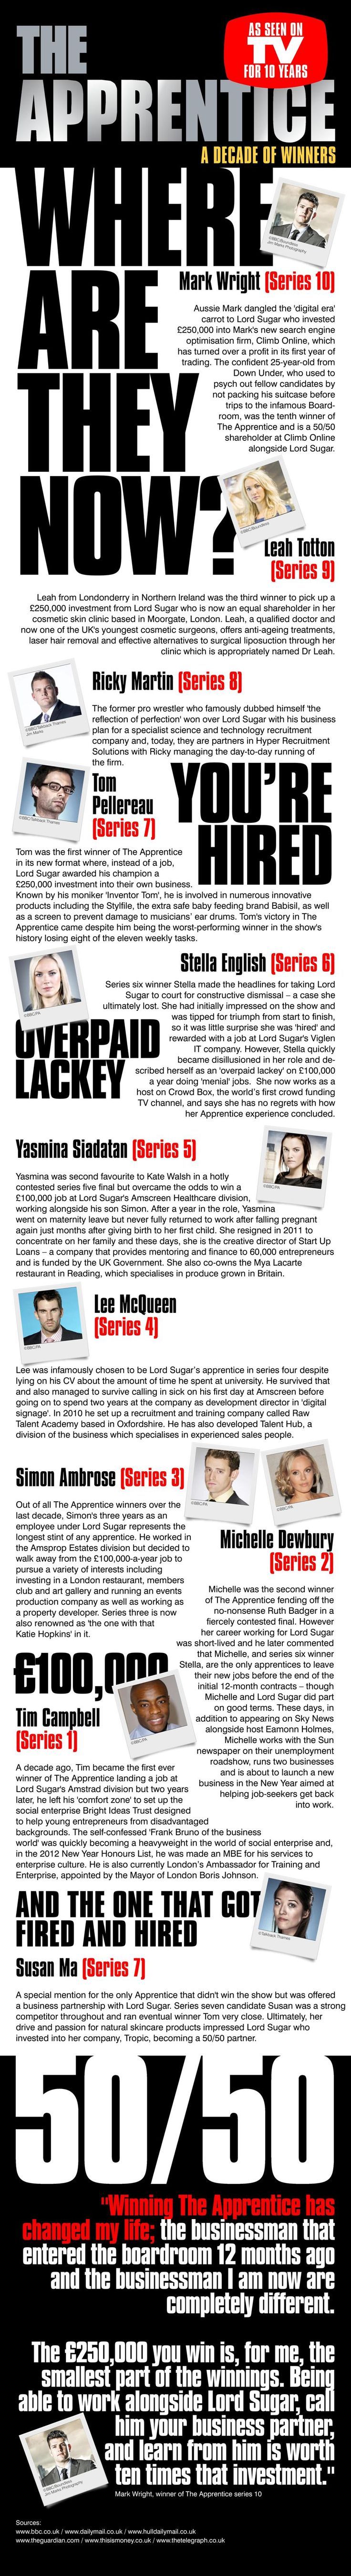 The Apprentice Winners 2005-2015 - Where Are They Now?   http://www.realbusinessrescue.co.uk/